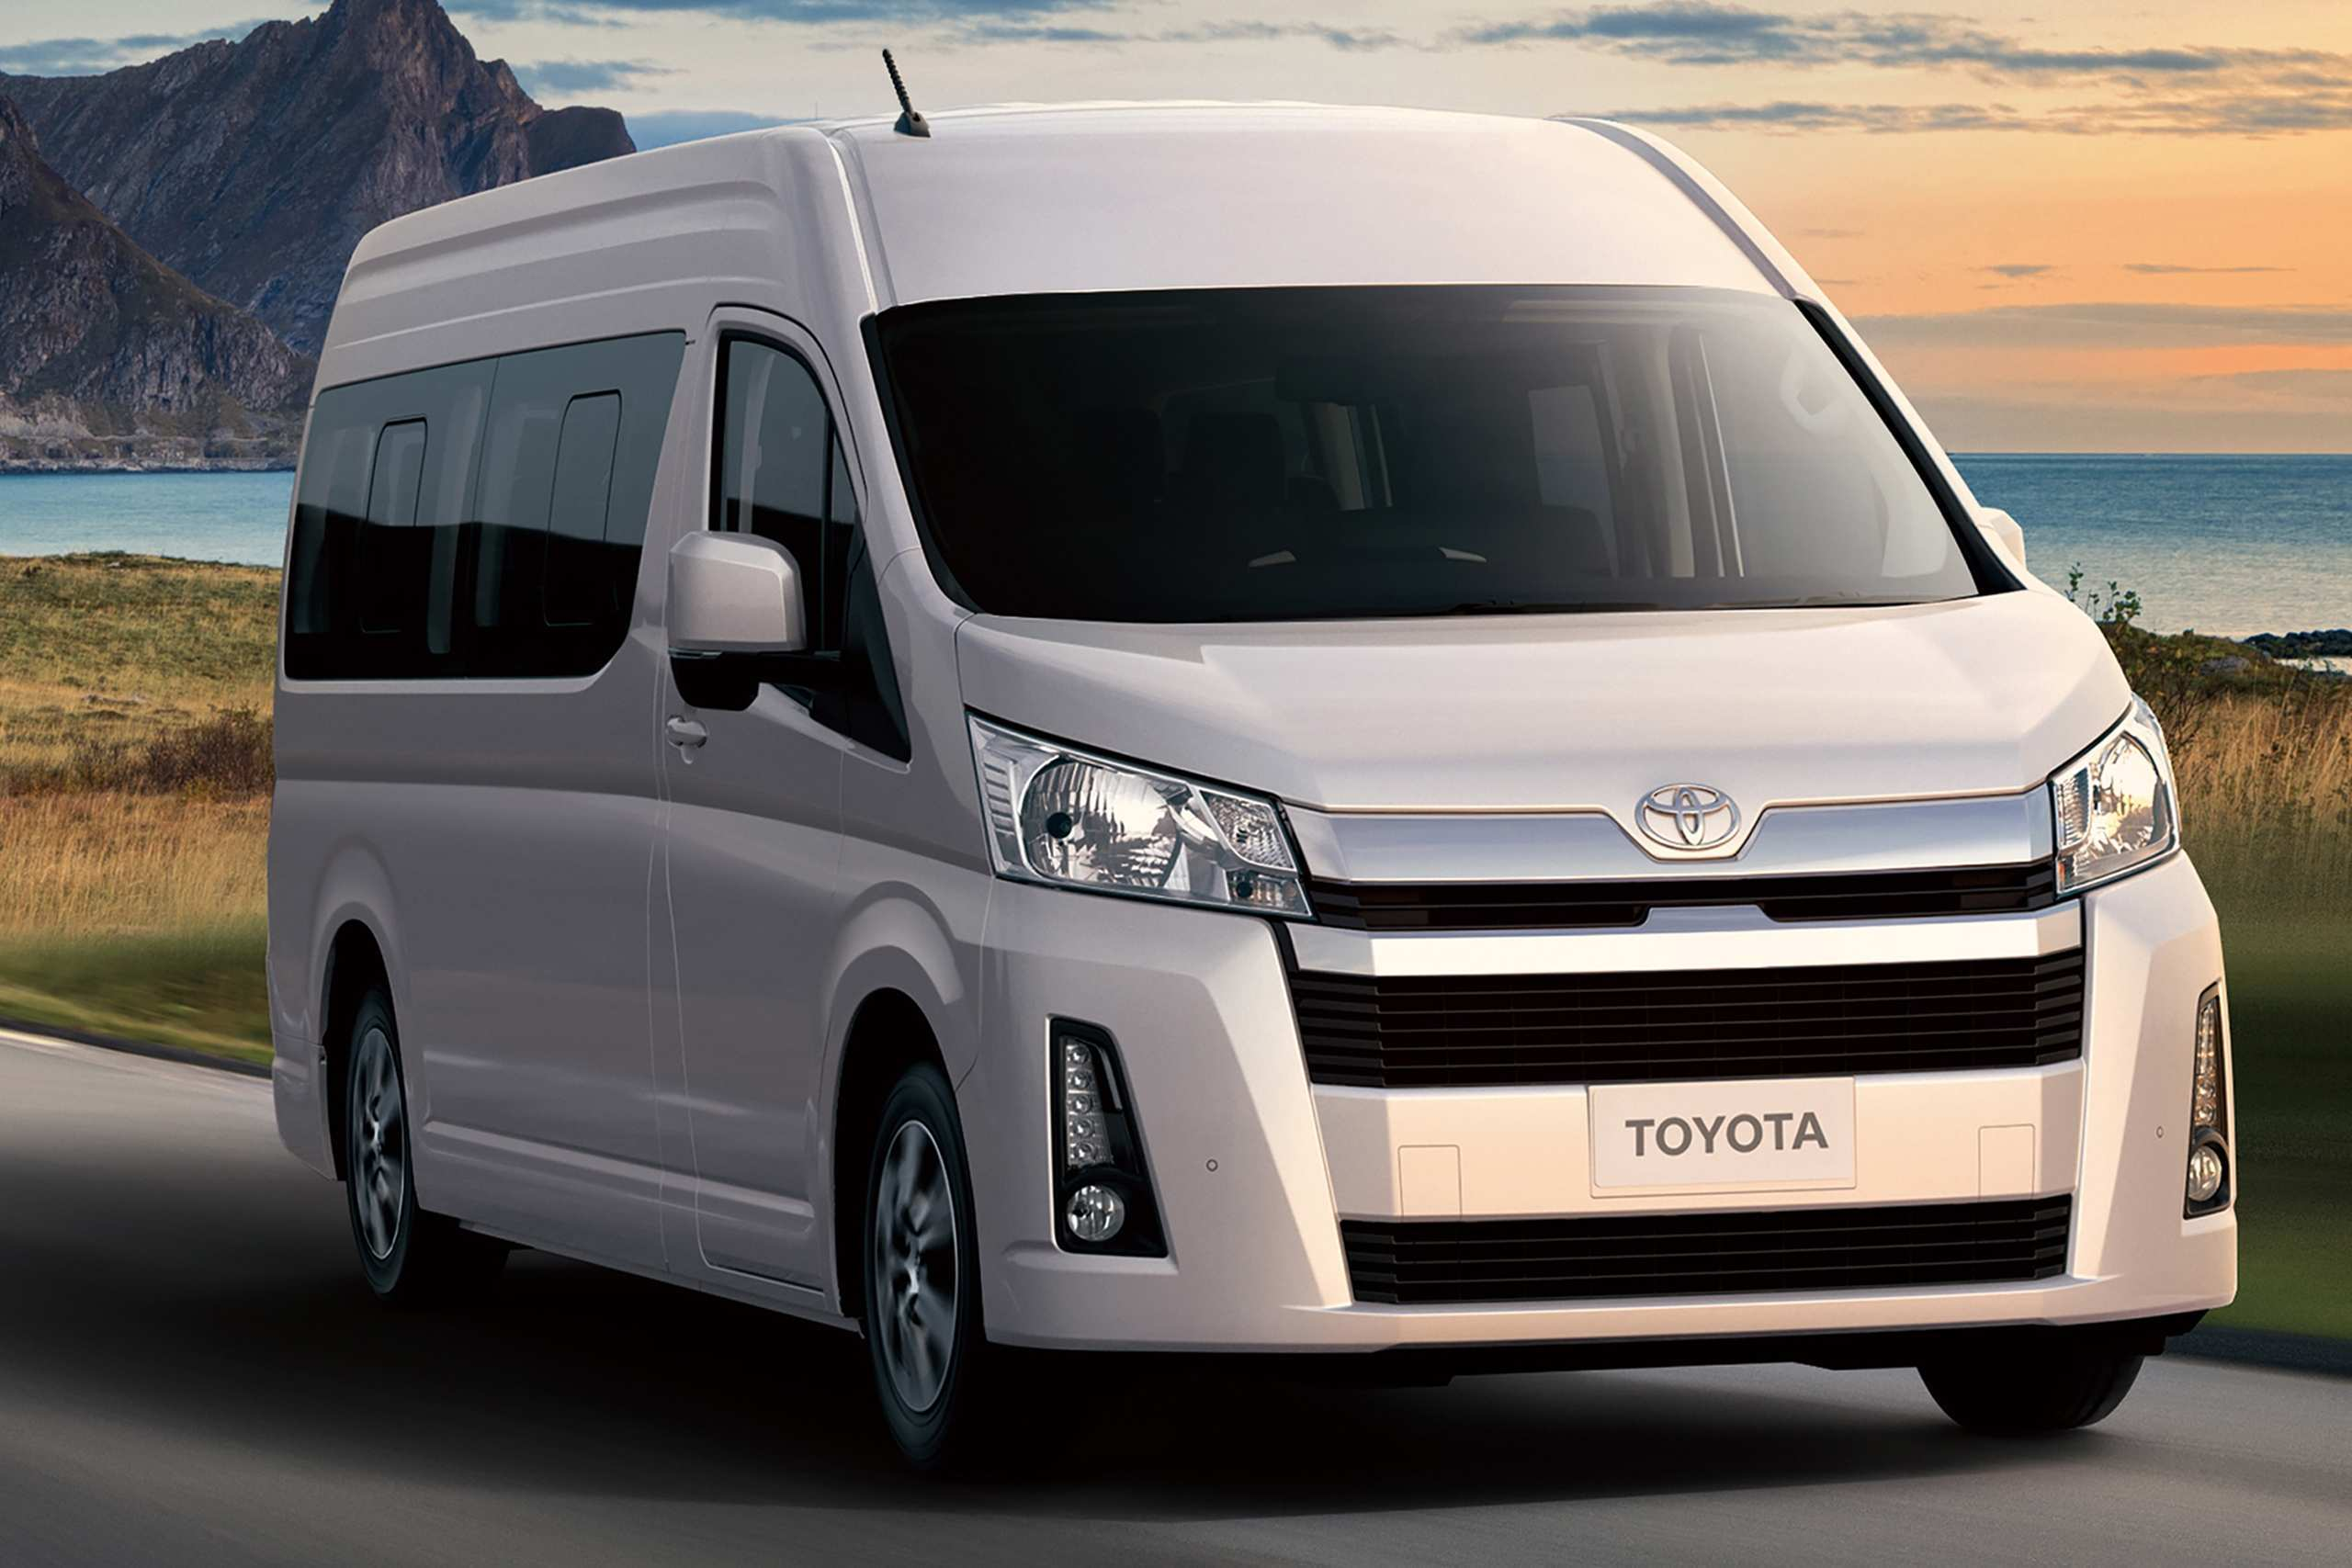 24 New Toyota Hiace 2019 Reviews with Toyota Hiace 2019